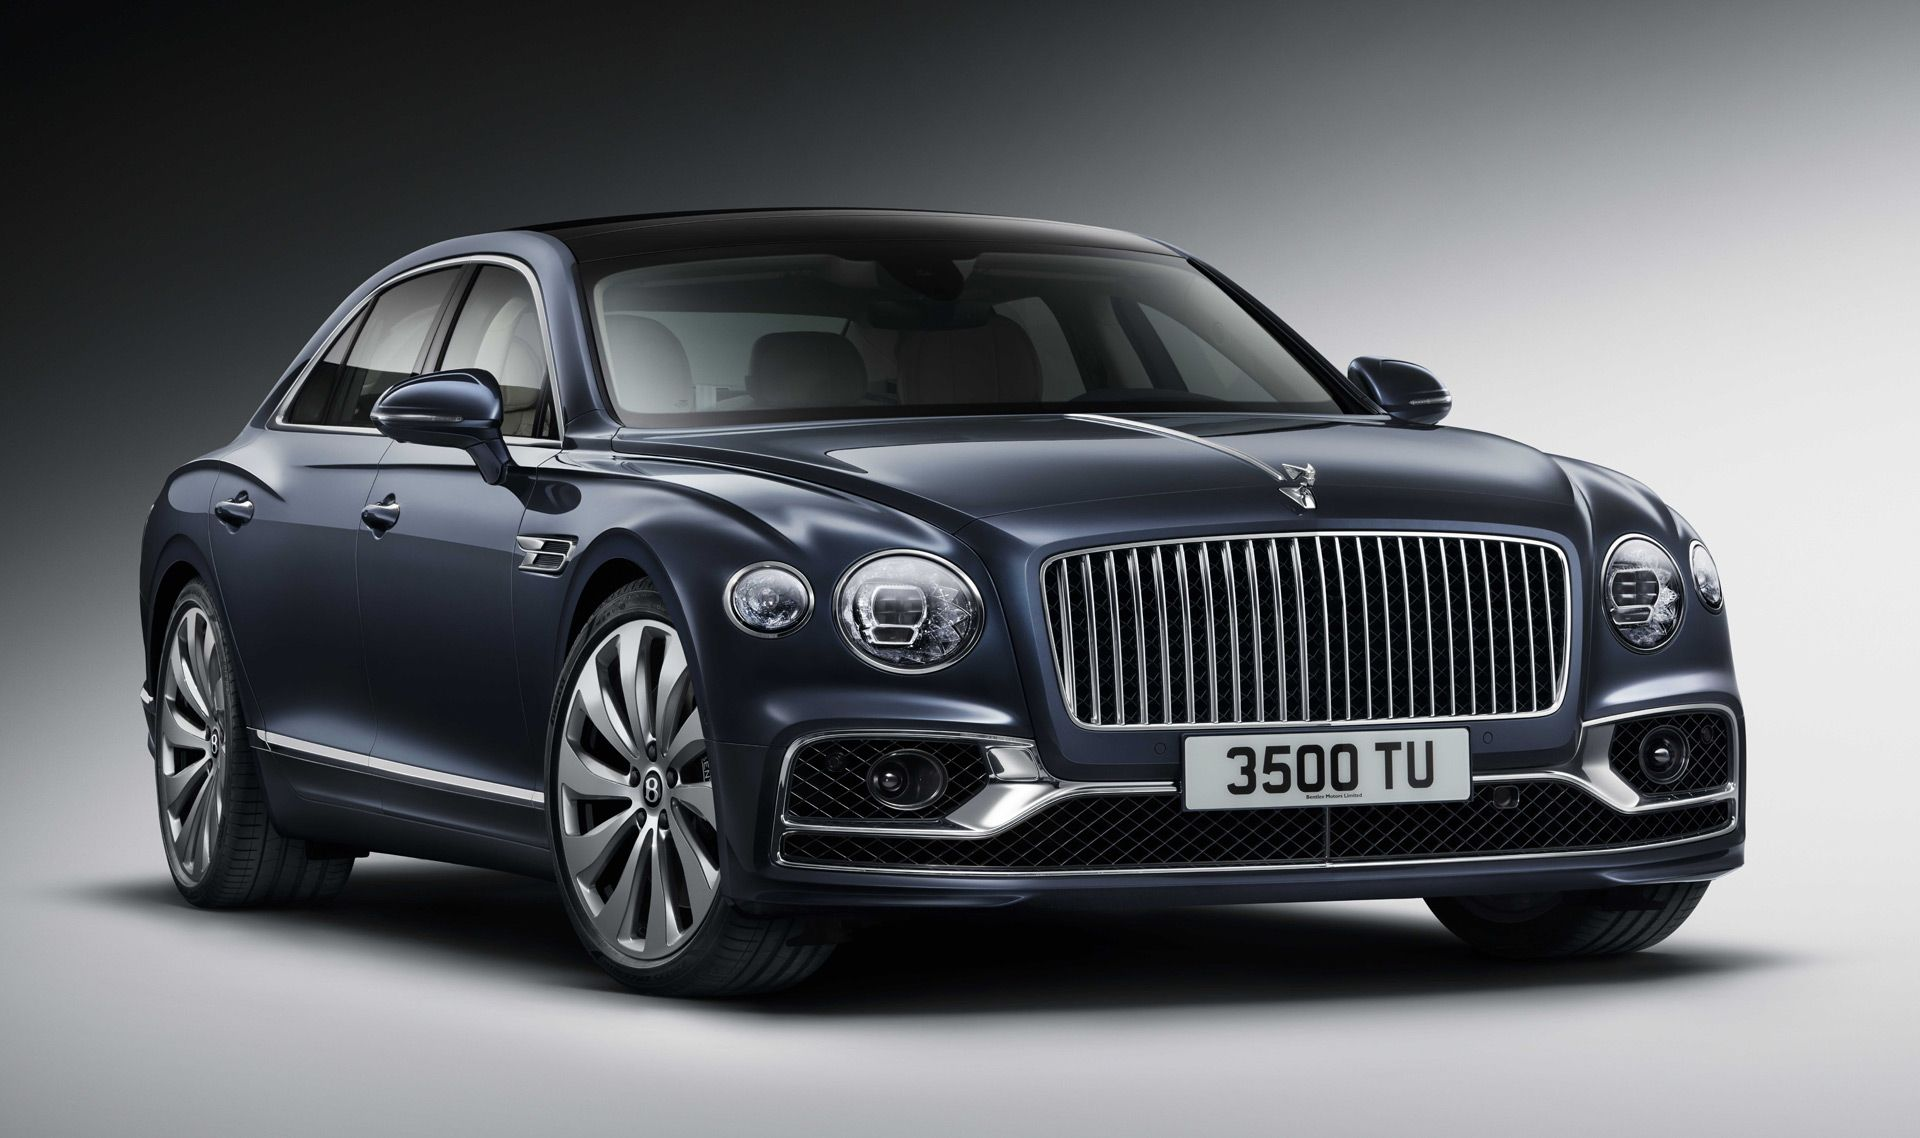 Bentley S New Flying Spur Is A Much Sharper More Dynamic Sedan Than Its Predecessor Bentley Flying Spur Flying Spur Bentley